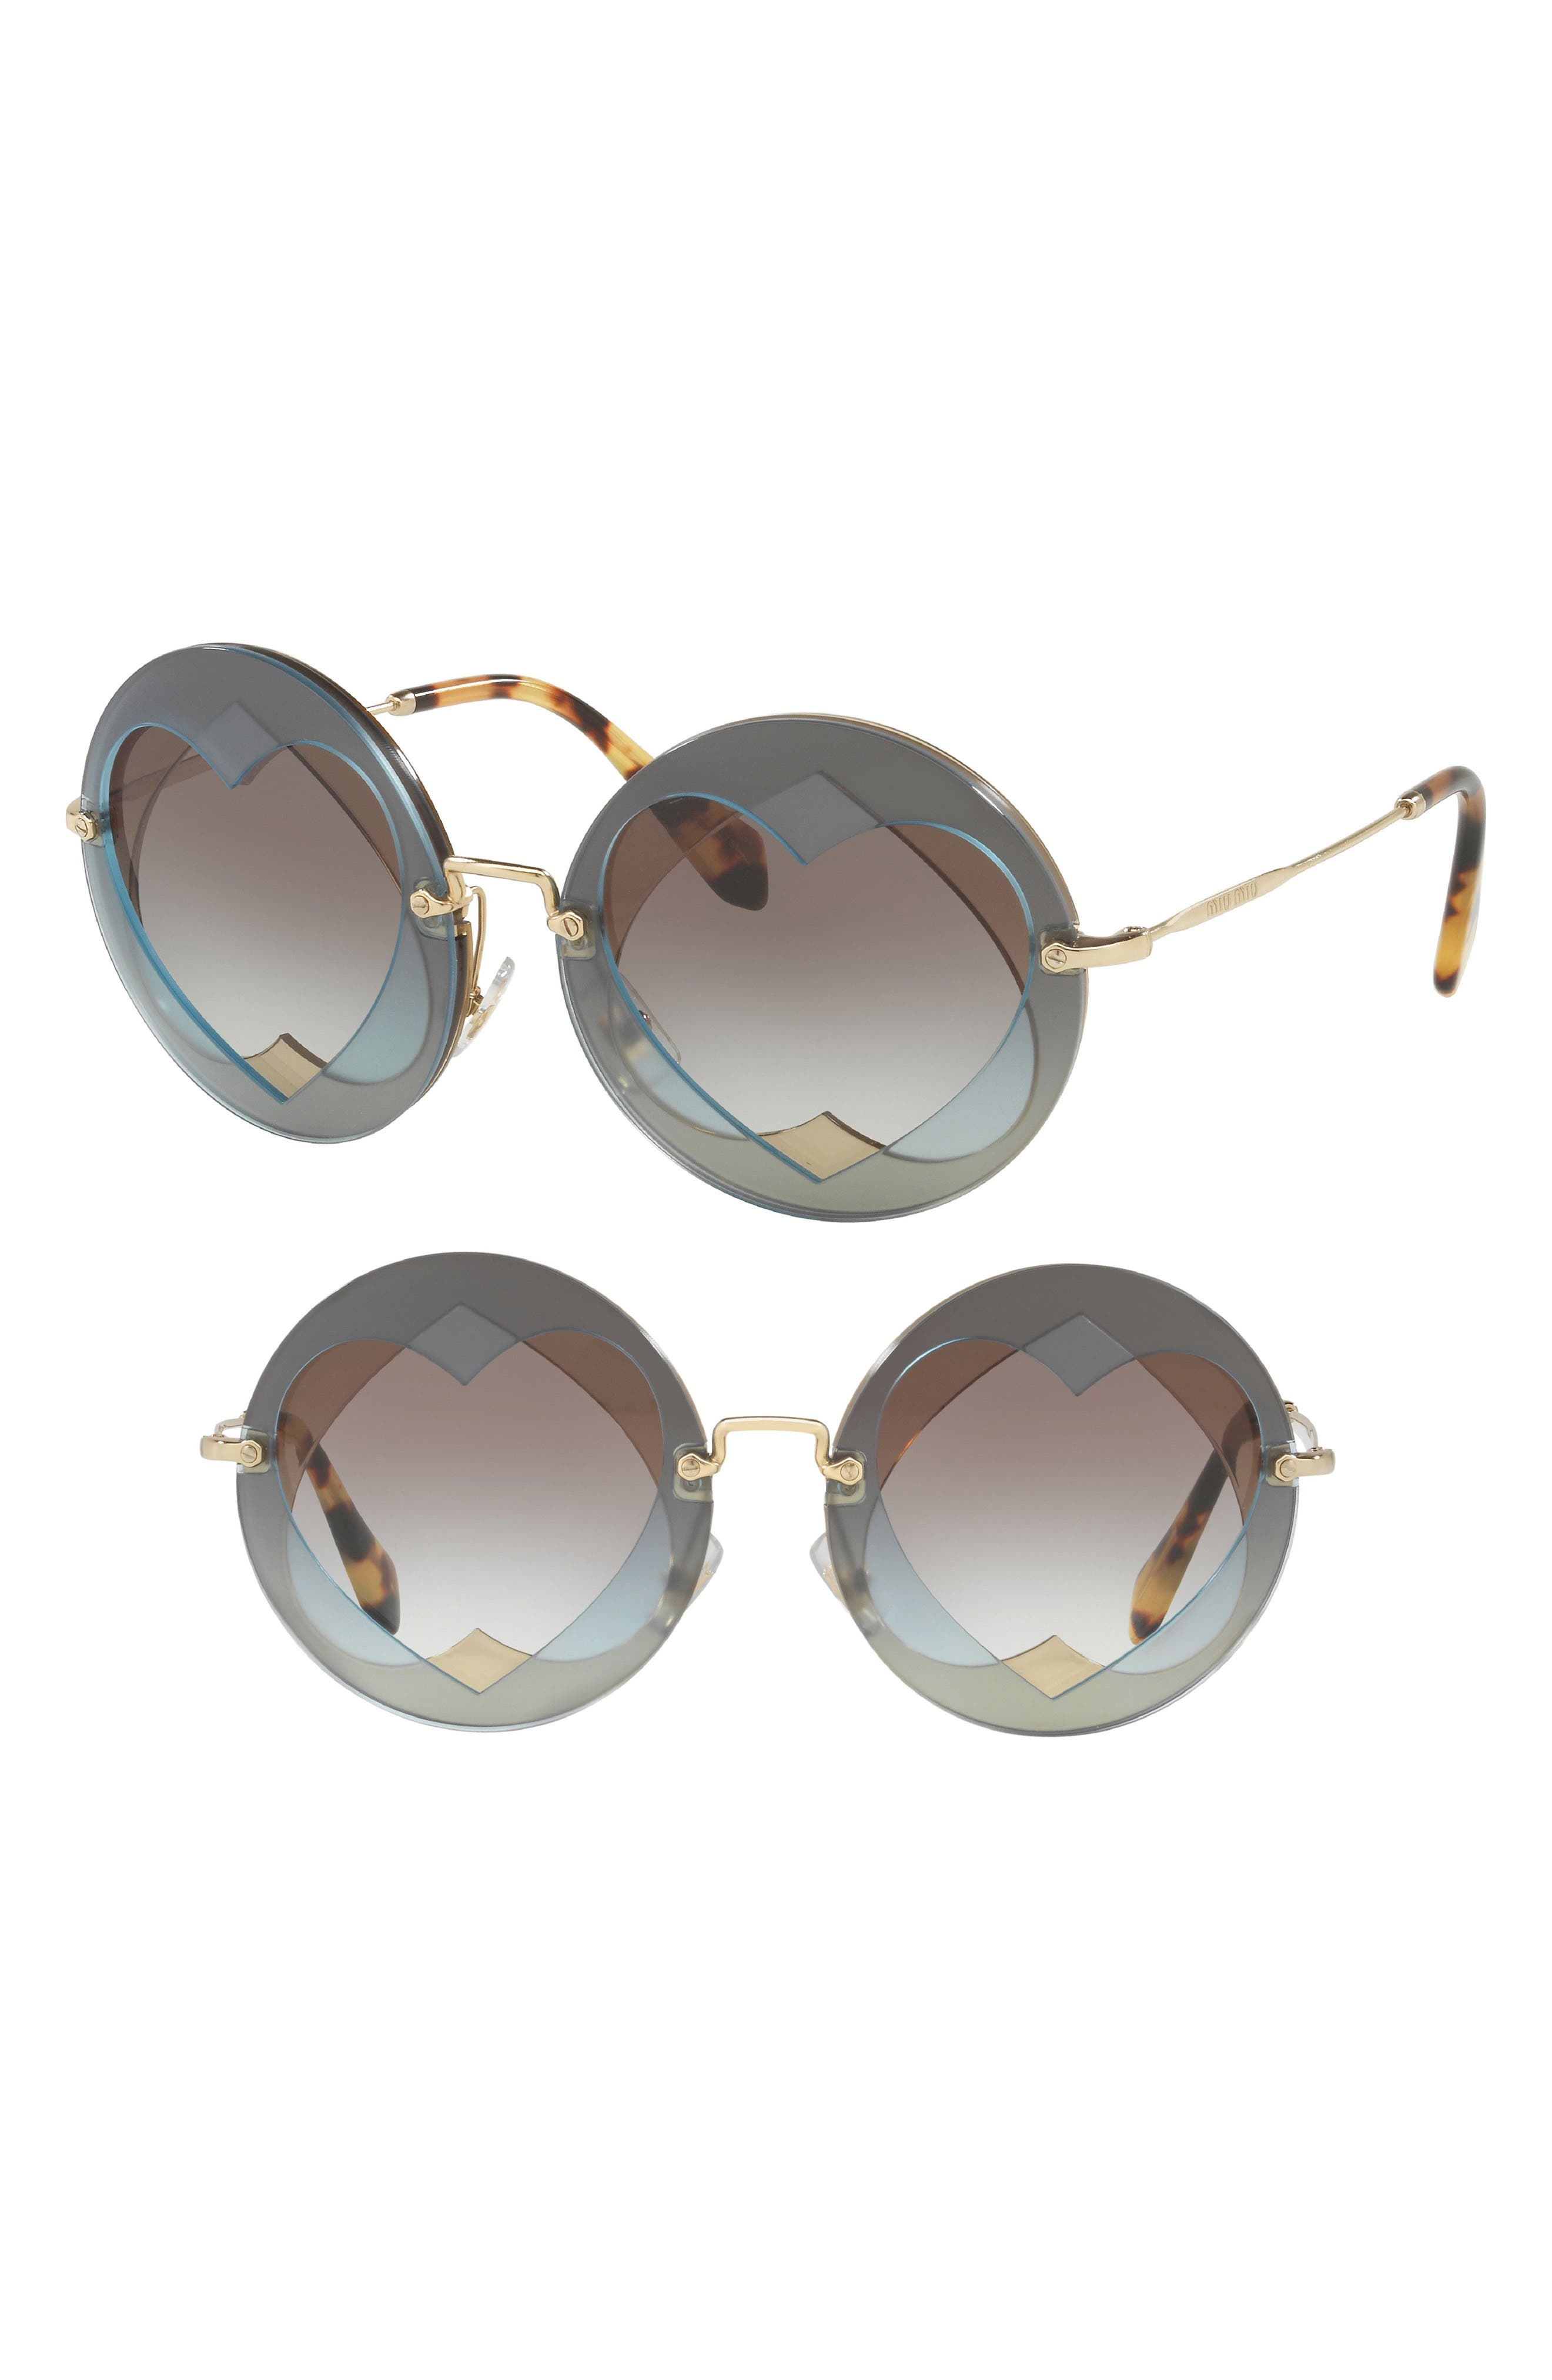 Miu Miu 62Mm Layered Heart Round Sunglasses -